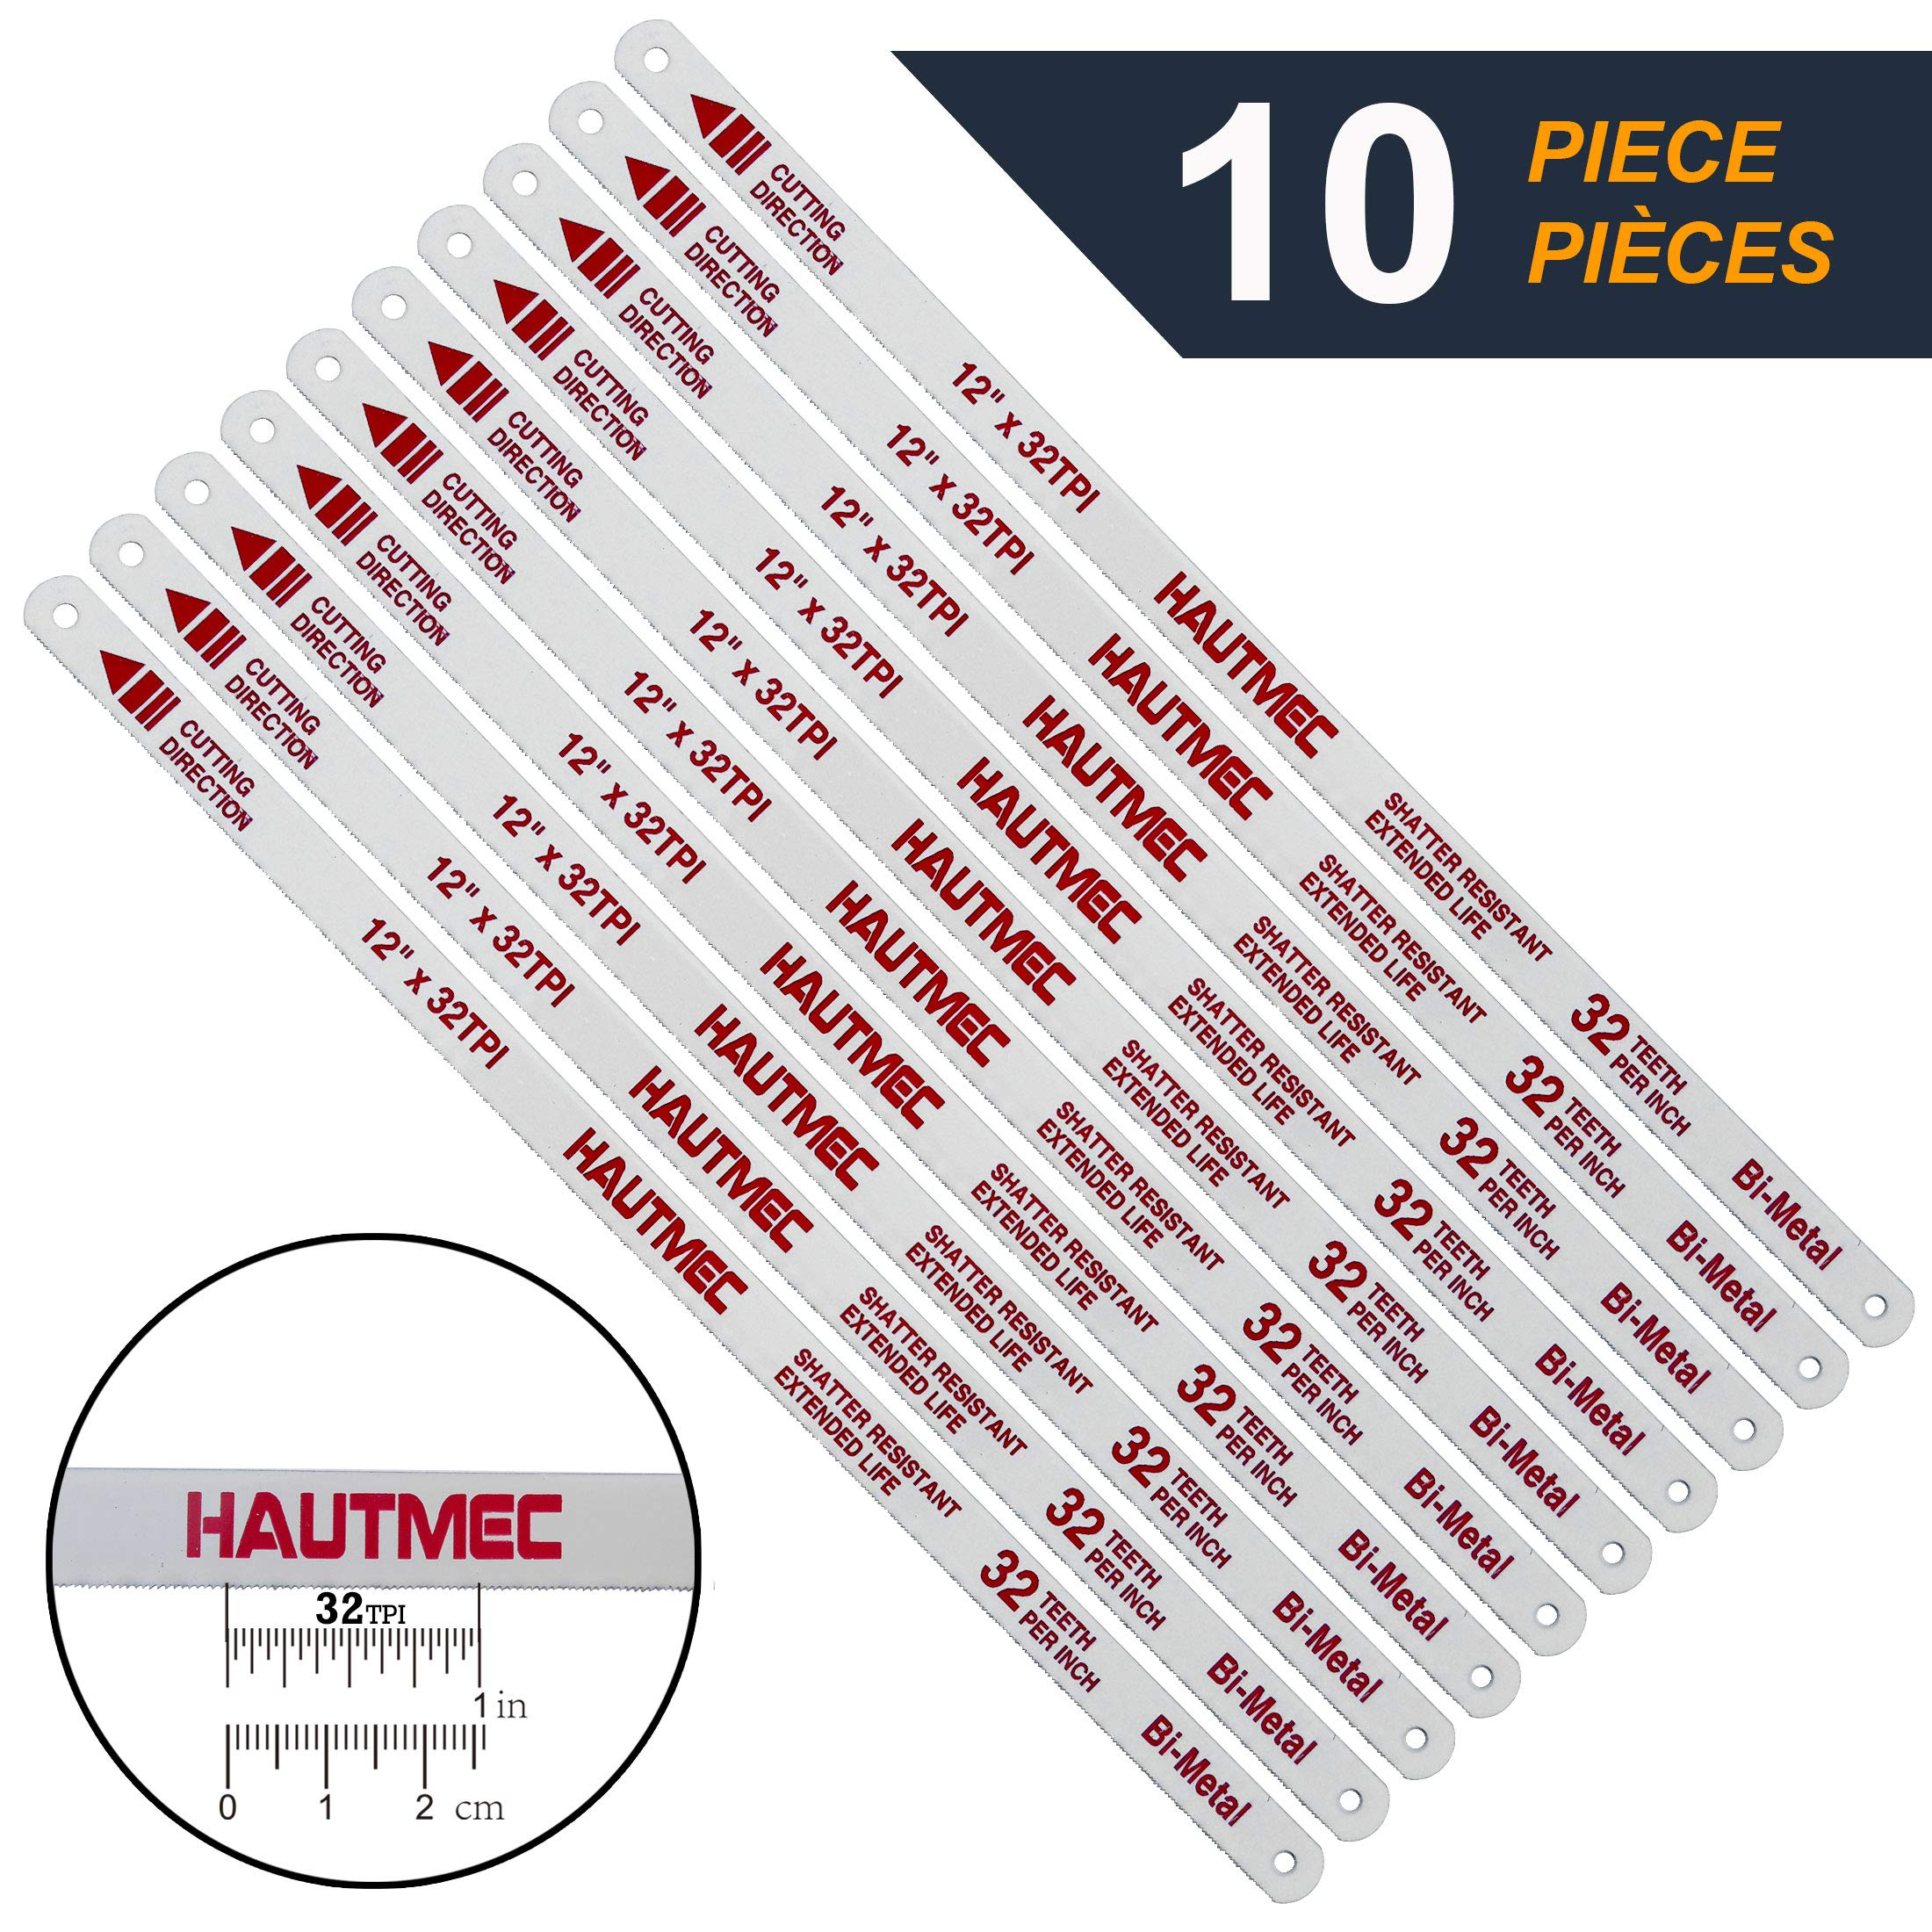 HAUTMEC Hacksaw Replacement Blades BI-METAL (10 Pack) High Speed Steel Grounded Teeth 32 TPI x 12'' Length 0.025'' Thick x 1/2'' Width HT0018-CT by HAUTMEC (Image #1)